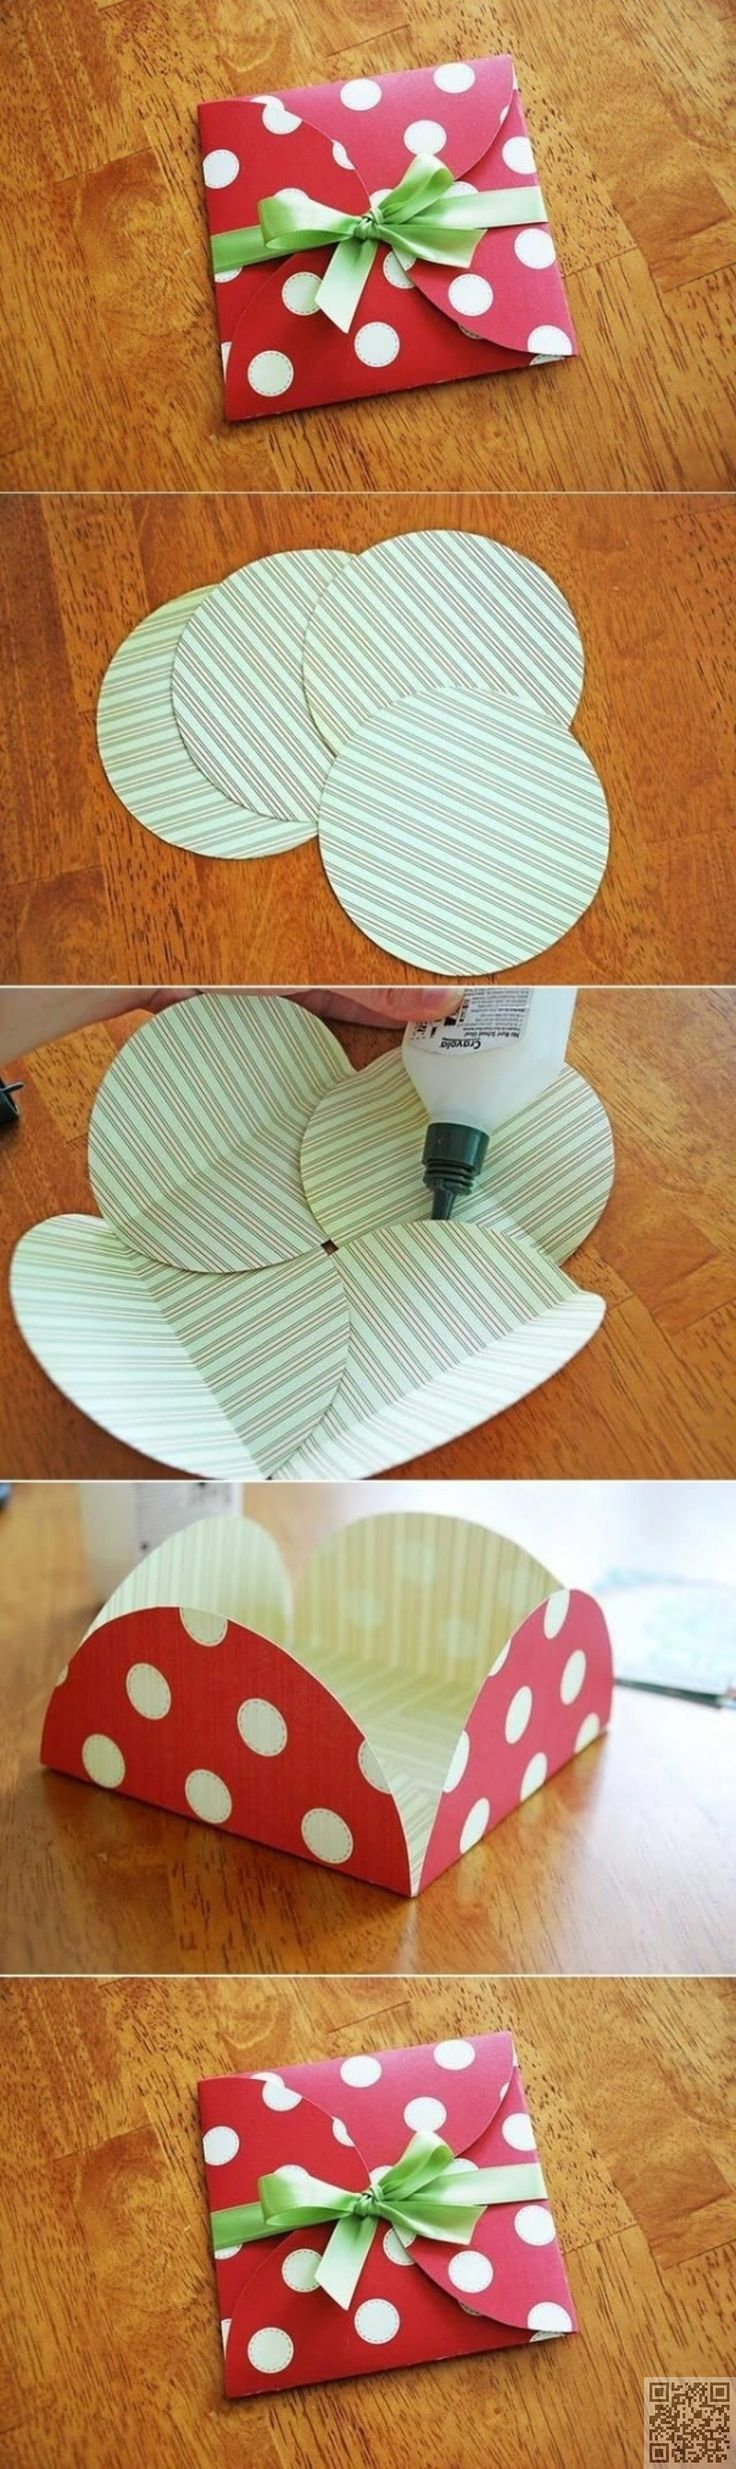 19. DIY #Envelope - 20 Fabulous Gift #Wrapping Tutorials for the #Holidays ... → DIY #Flower